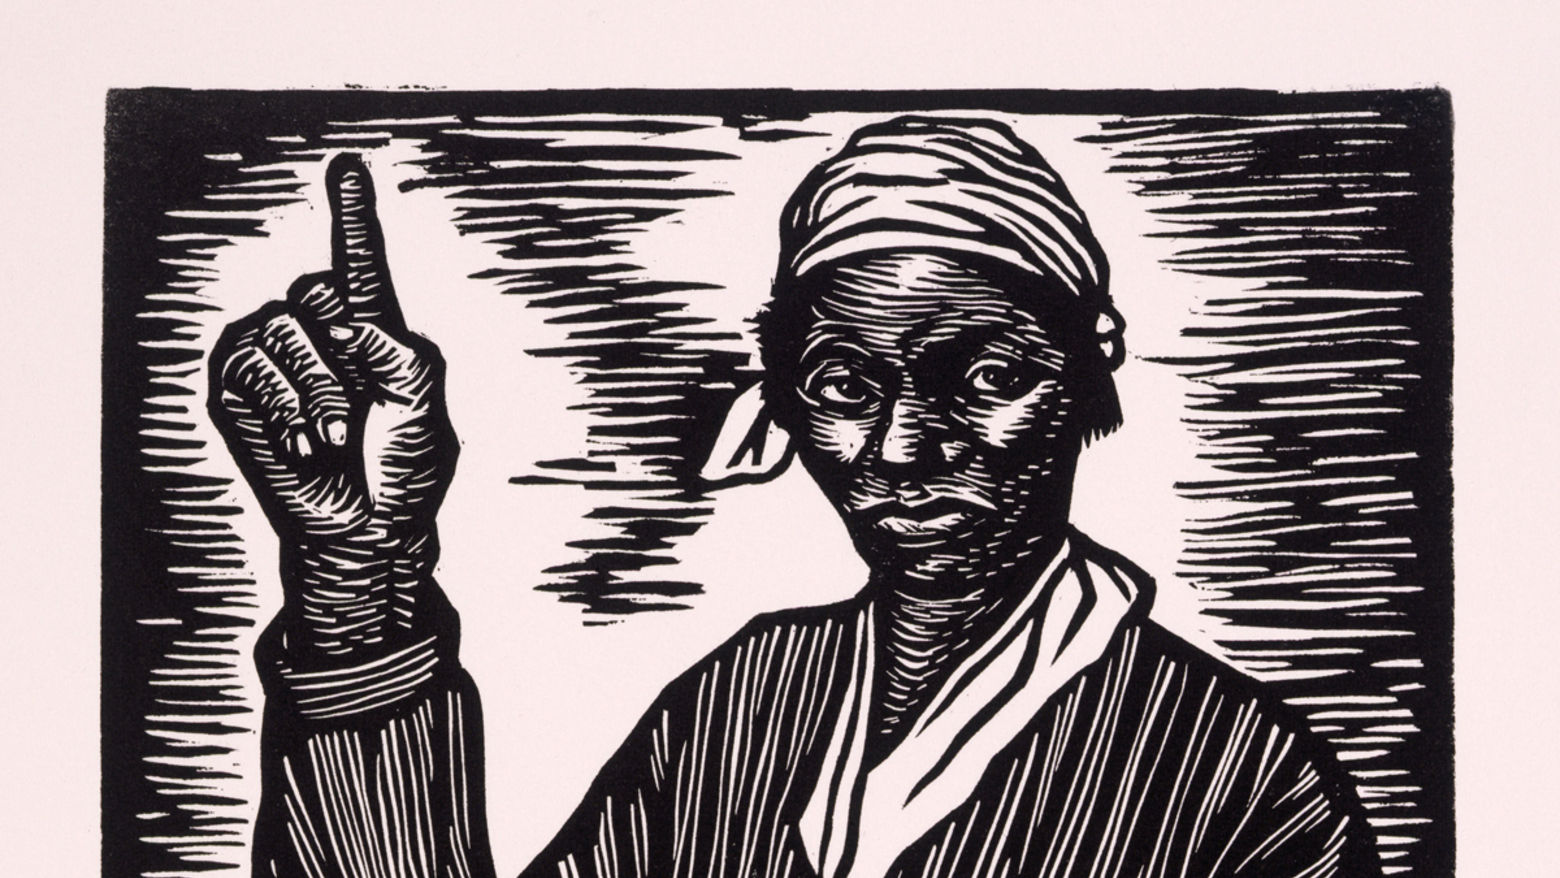 woodcut print showing a black woman standing in front of a book with her hand raised and index finger pointing to the sky